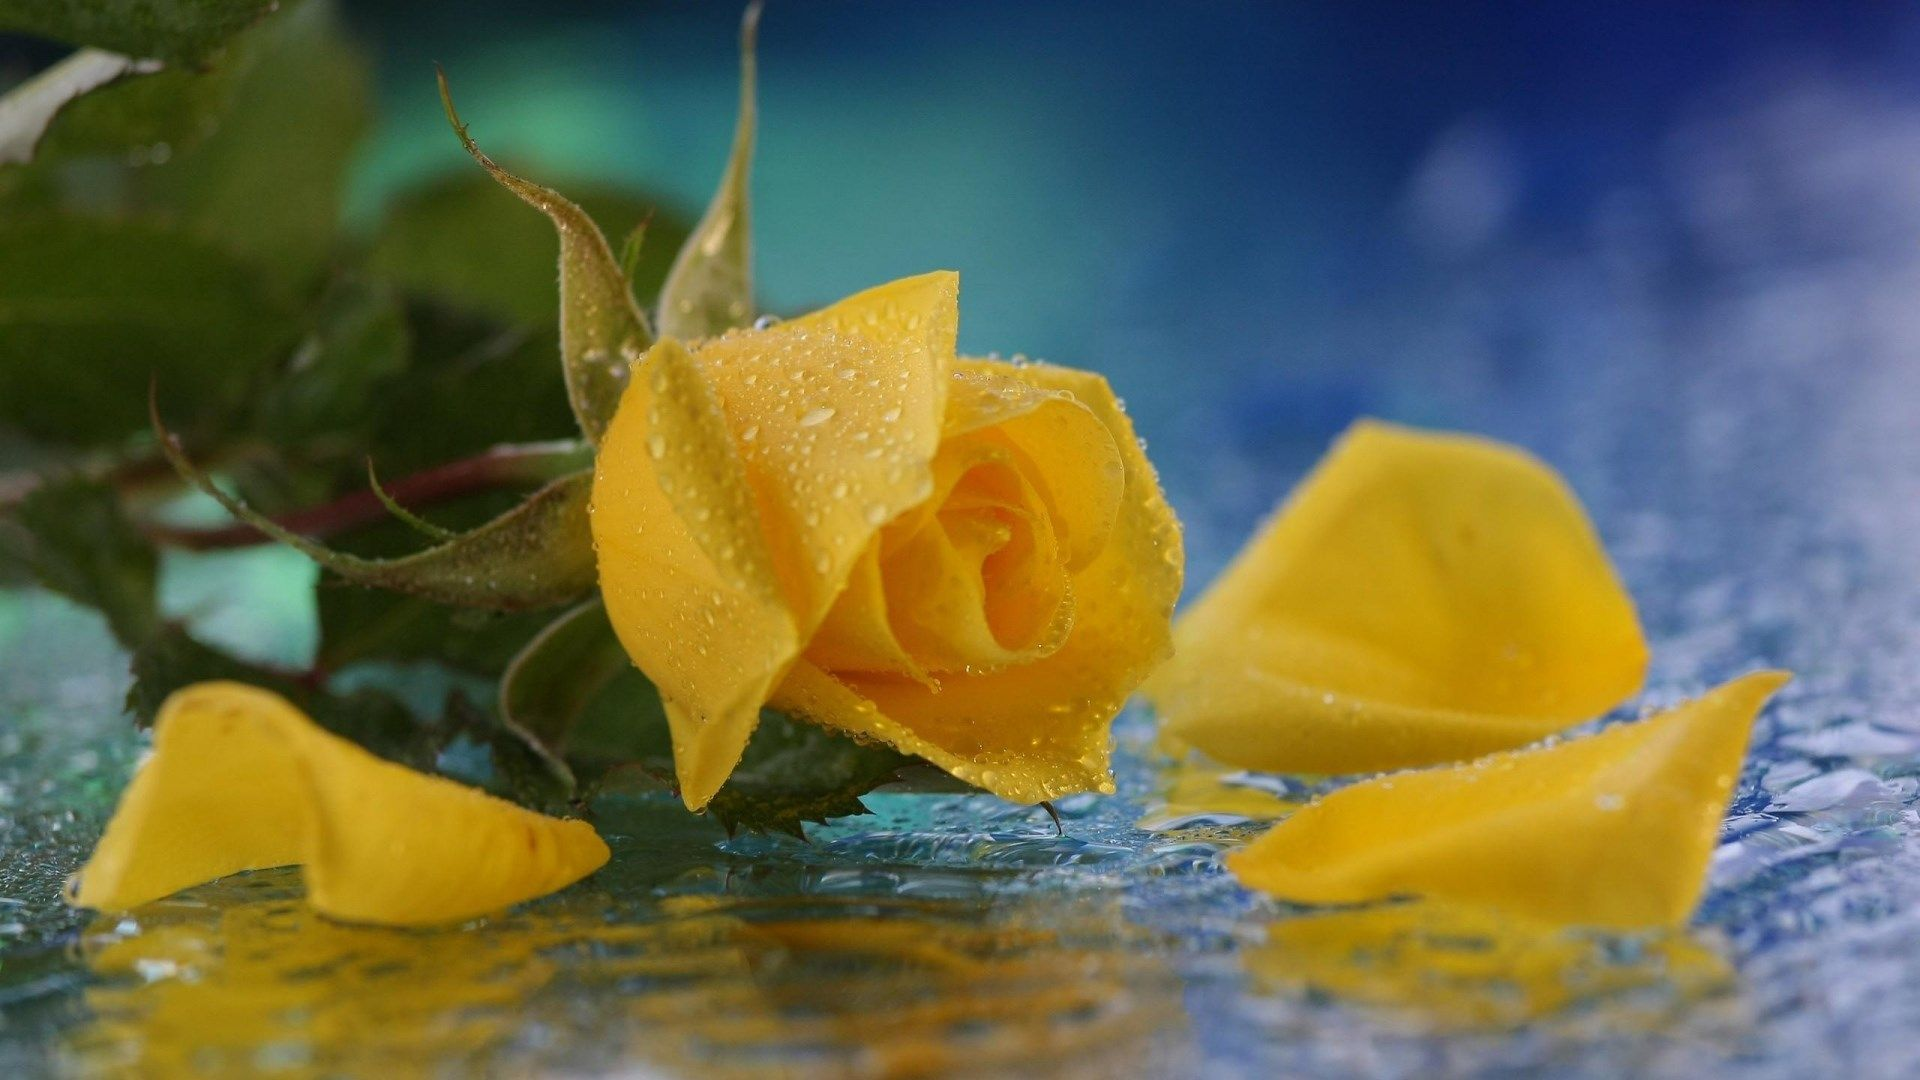 Hd Wallpapers 1080p Yellow Rose Backgrounds Yellow Roses Yellow Rose Petals Flowers